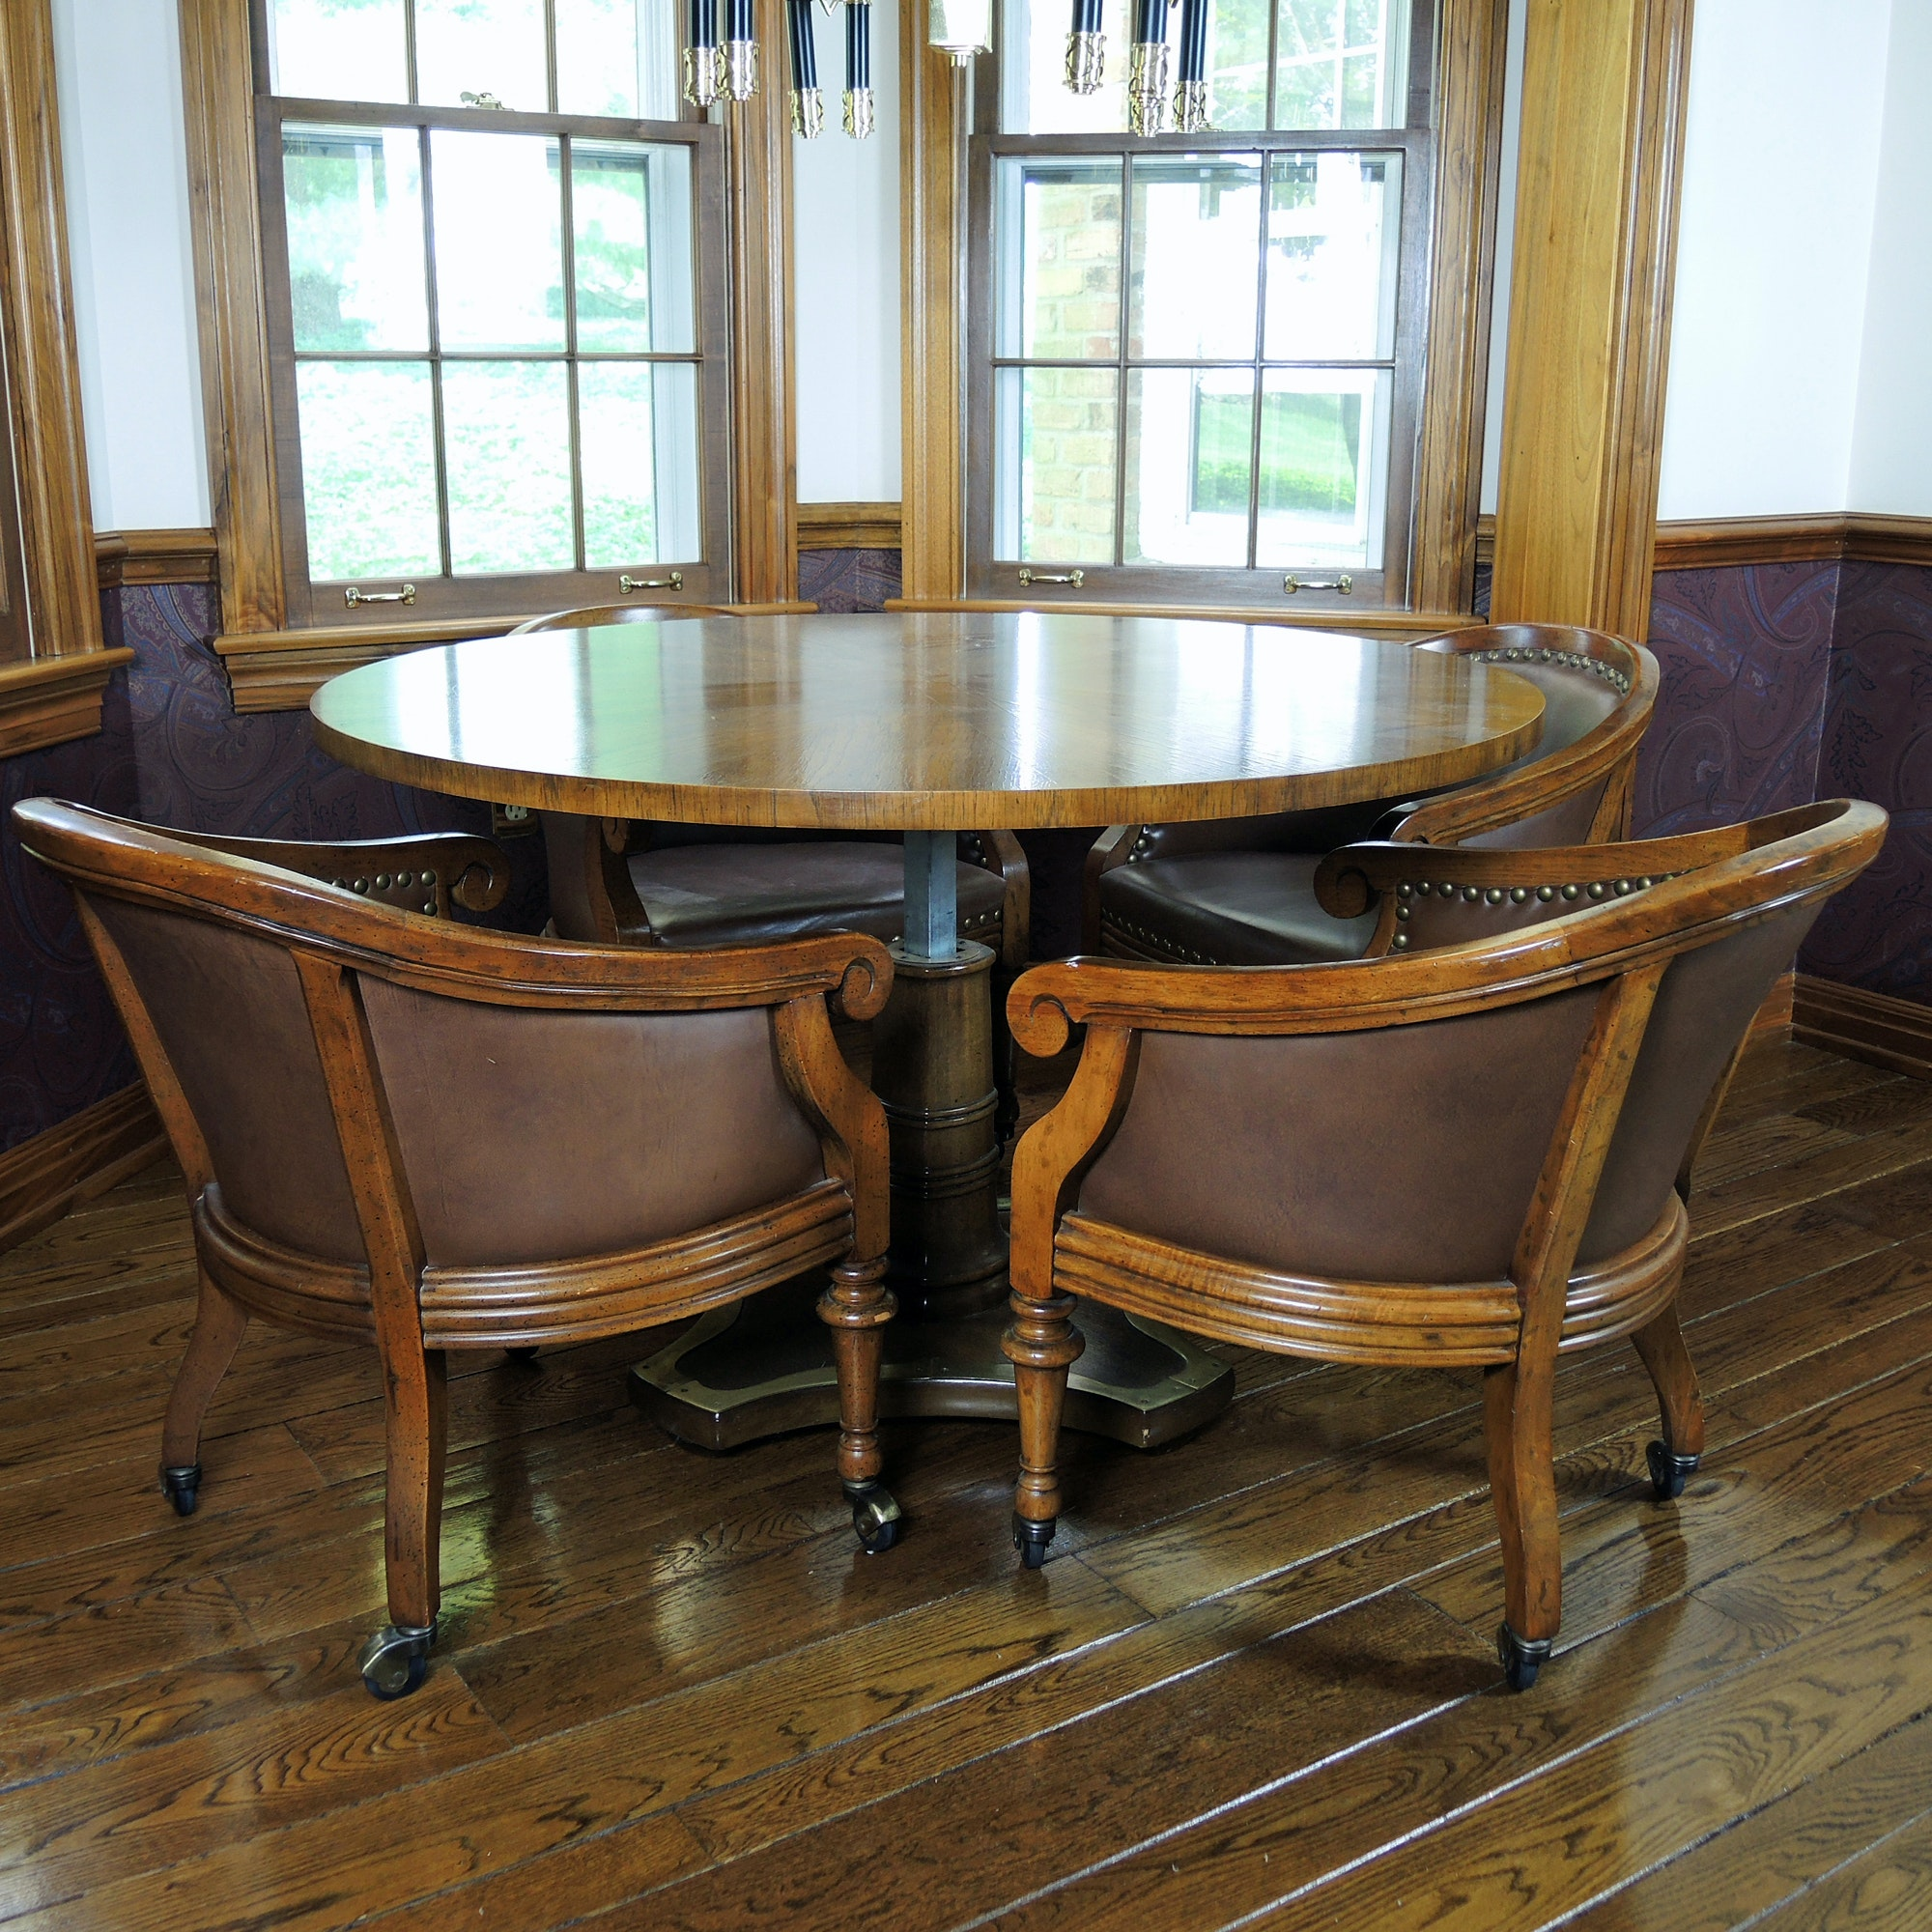 Henredon Pedestal Table and Four Chairs Set